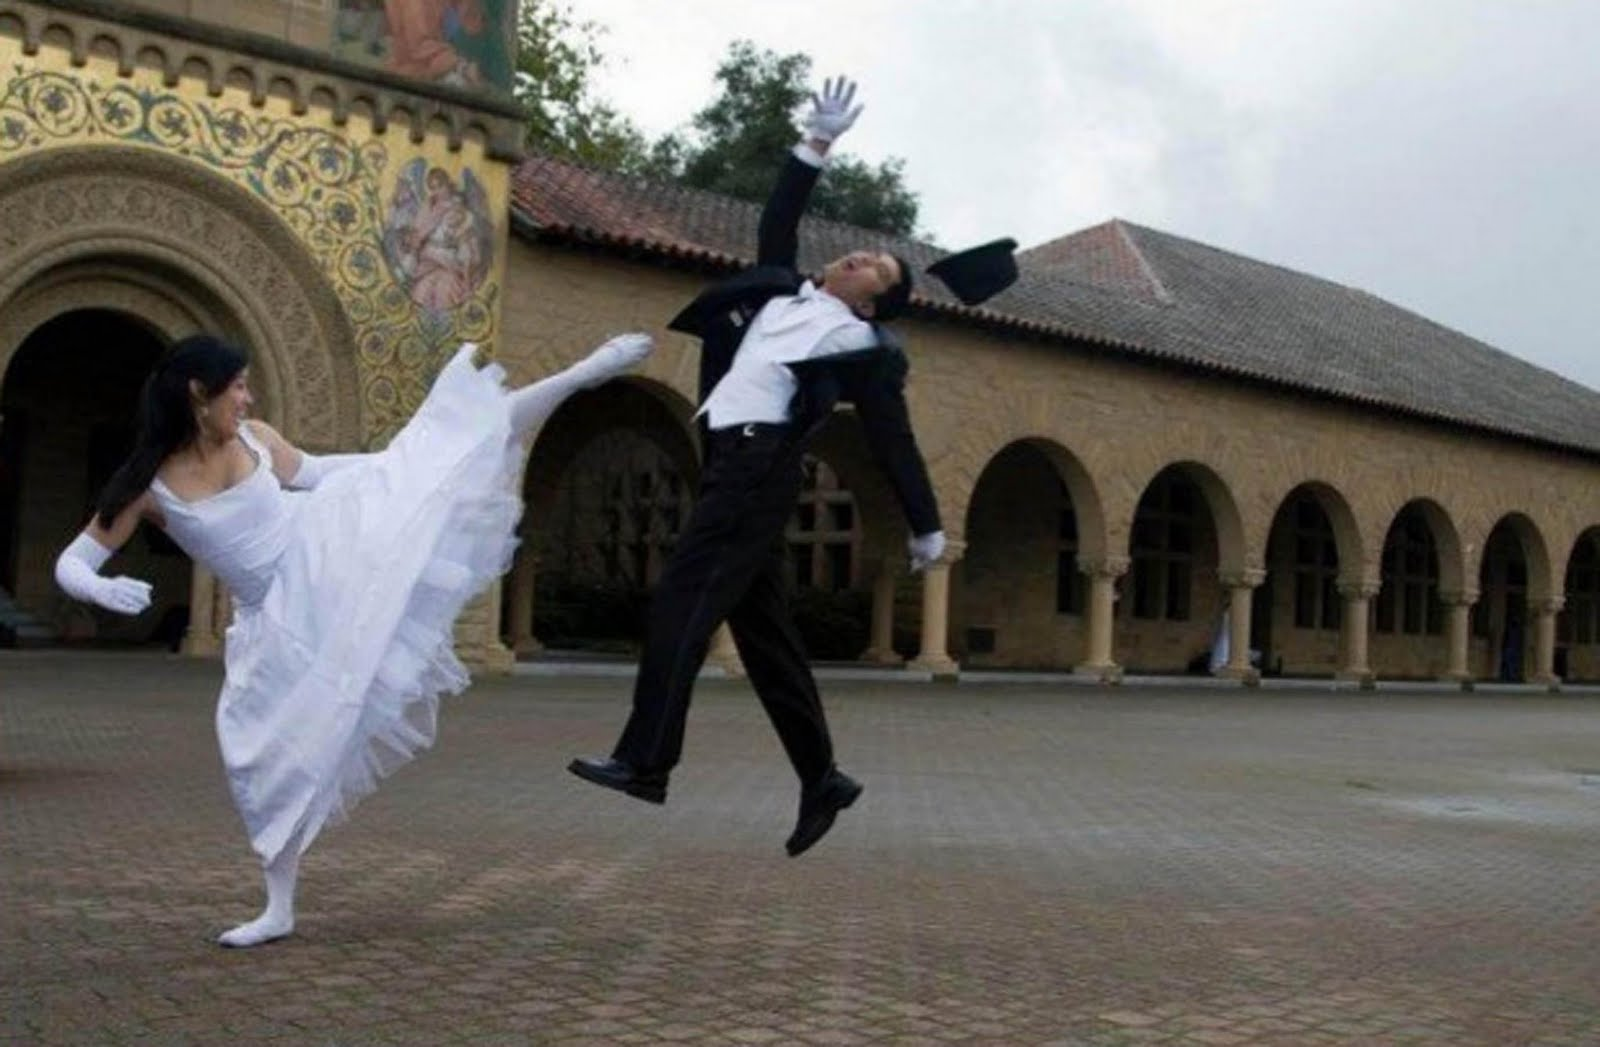 Want Some Best Fun Wedding Pictures Ideas